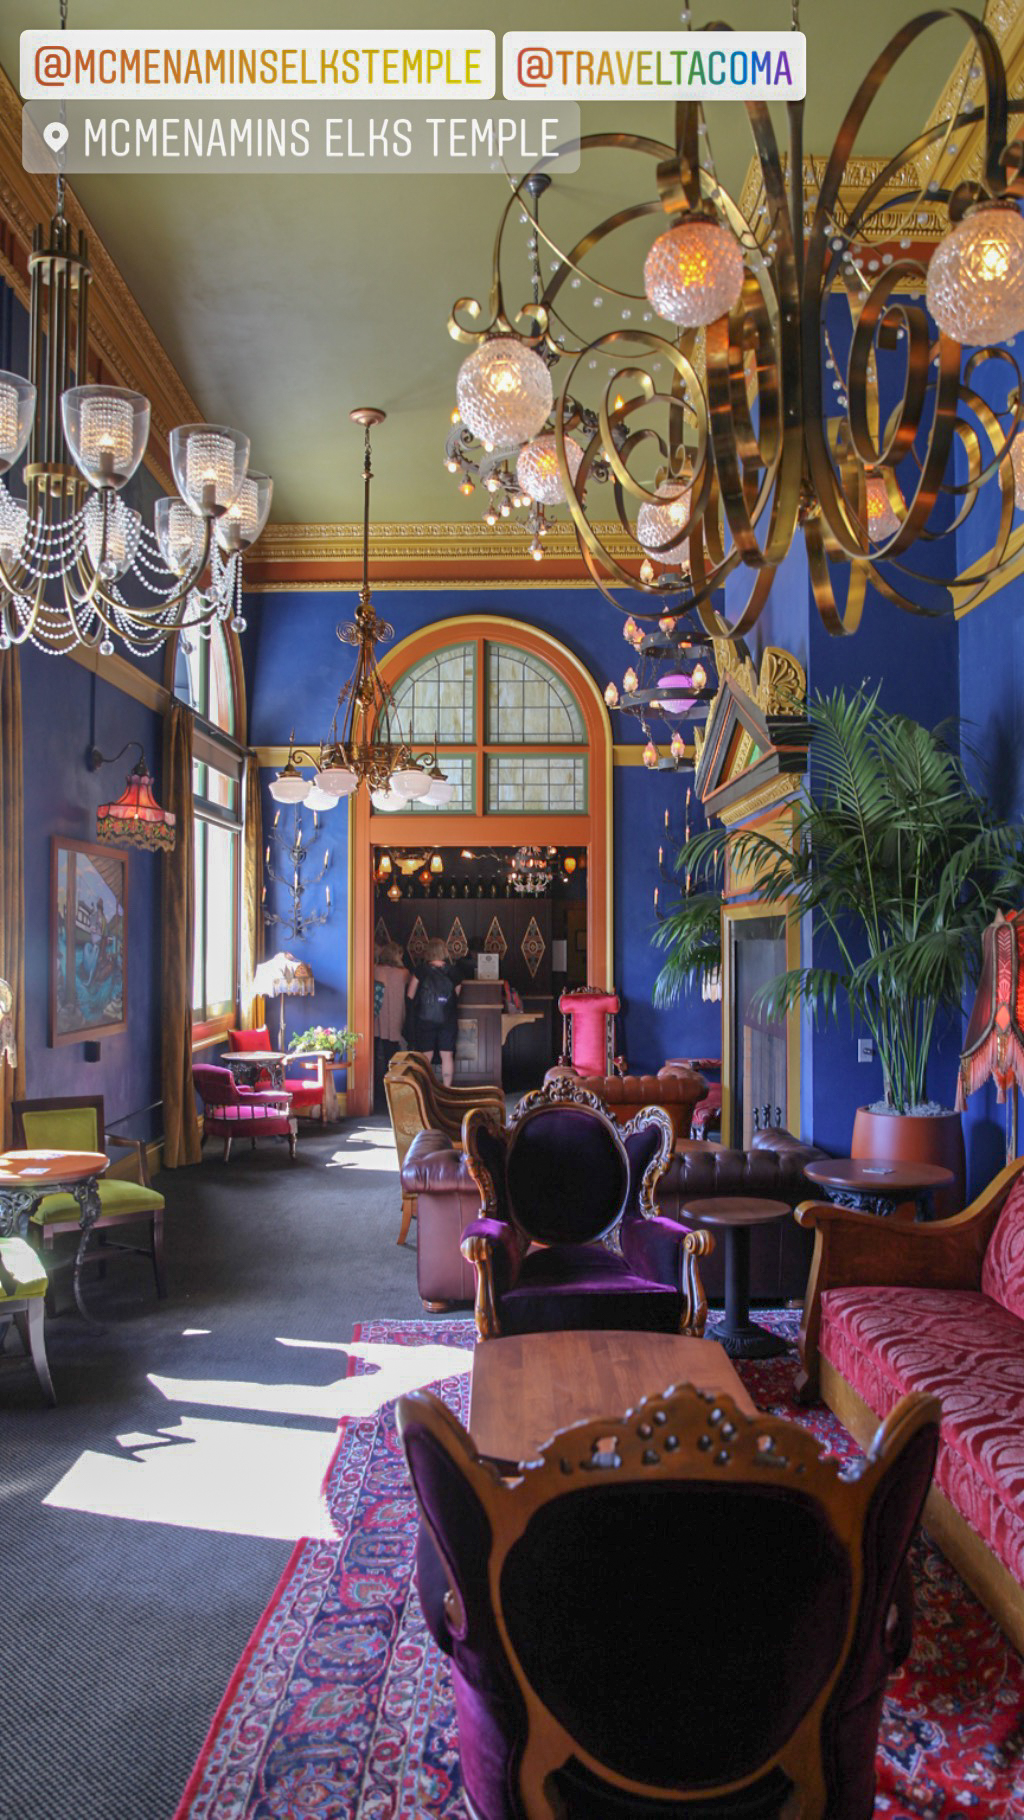 The colorful lobby